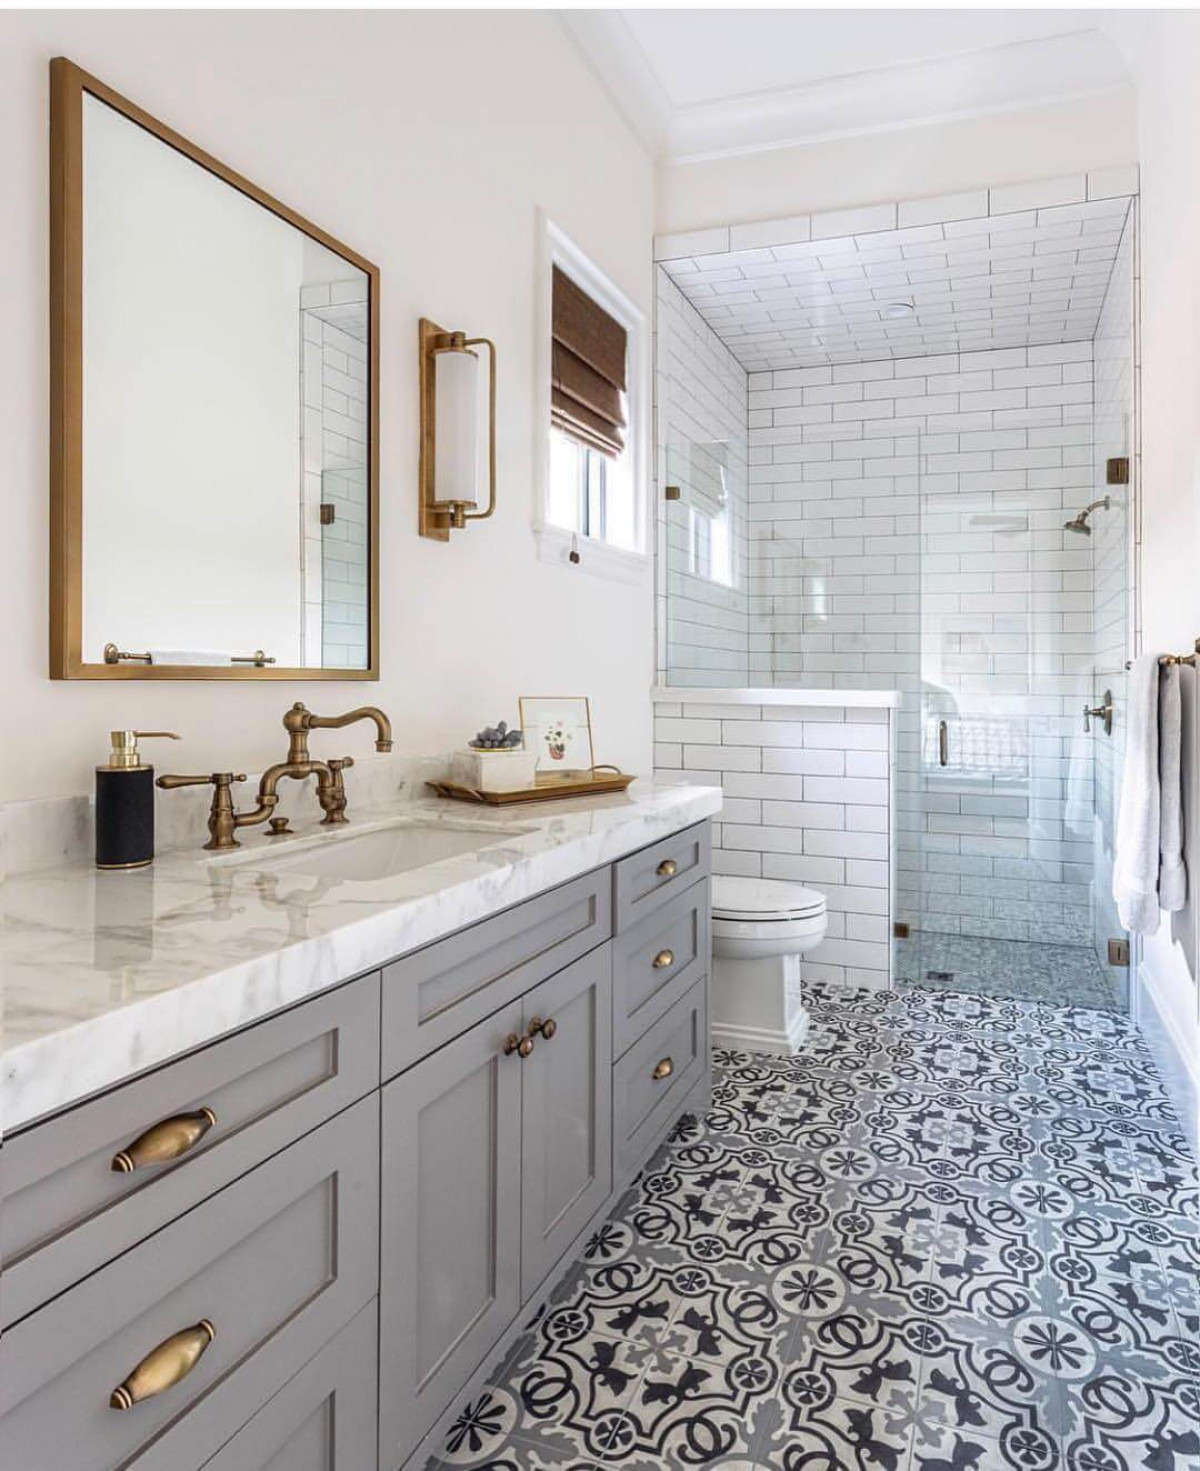 Pictures Of Bathrooms with Walk In Showers Beautiful 11 Brilliant Walk In Shower Ideas for Small Bathrooms